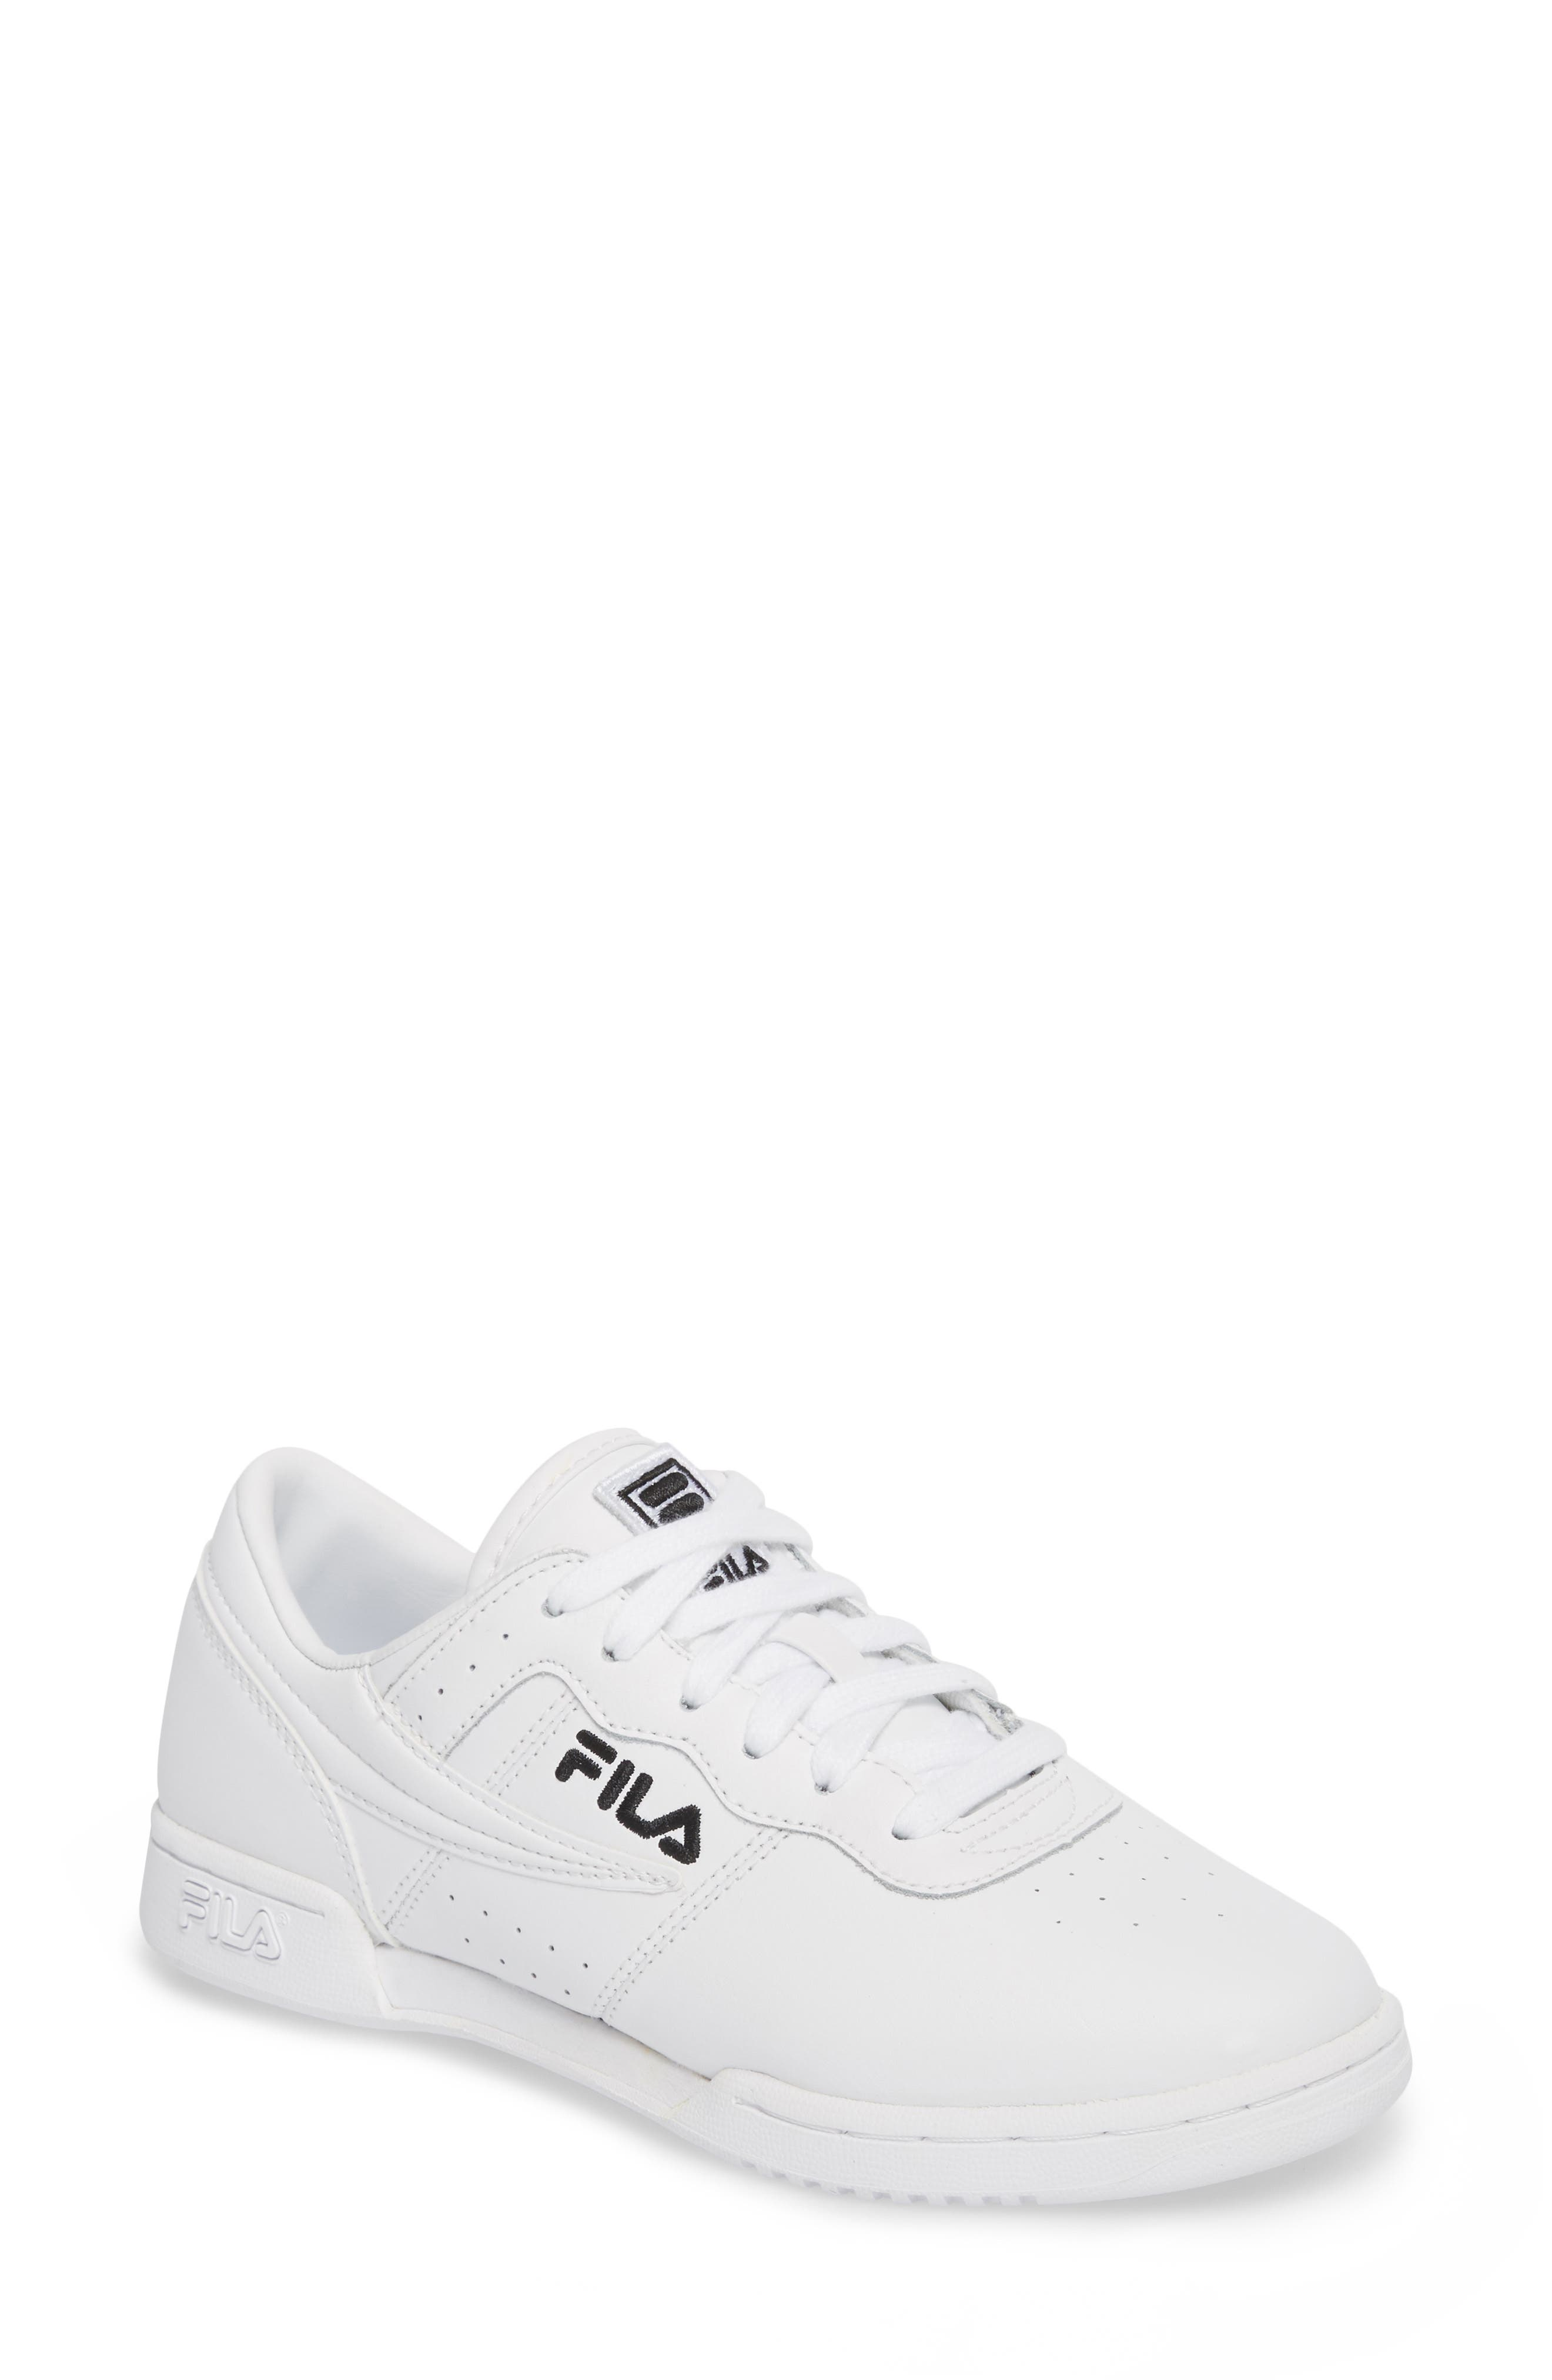 Alternate Image 1 Selected - FILA Original Fitness Sneaker (Women)